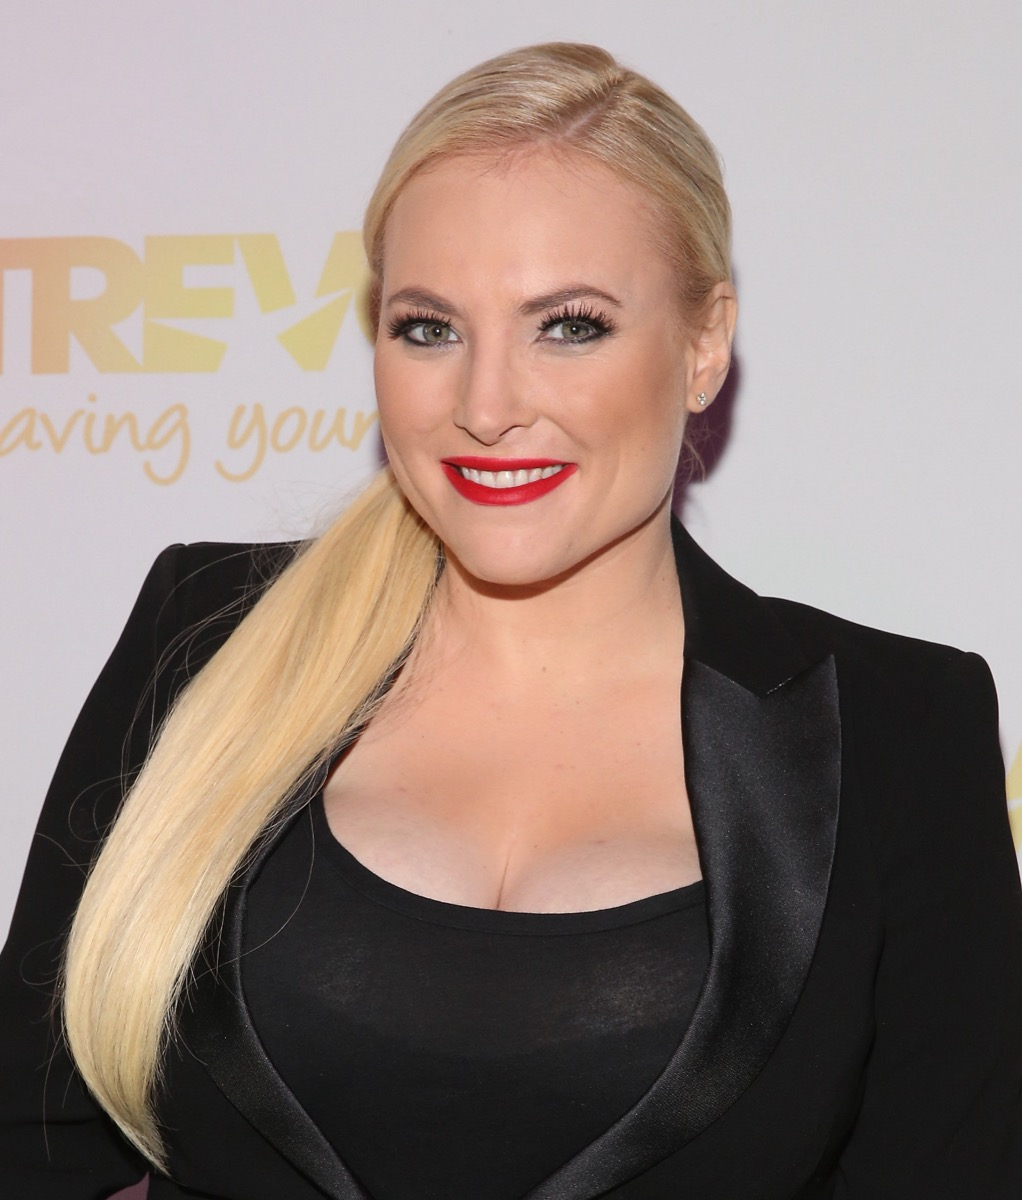 Meghan McCain at the Trever Project in 2015